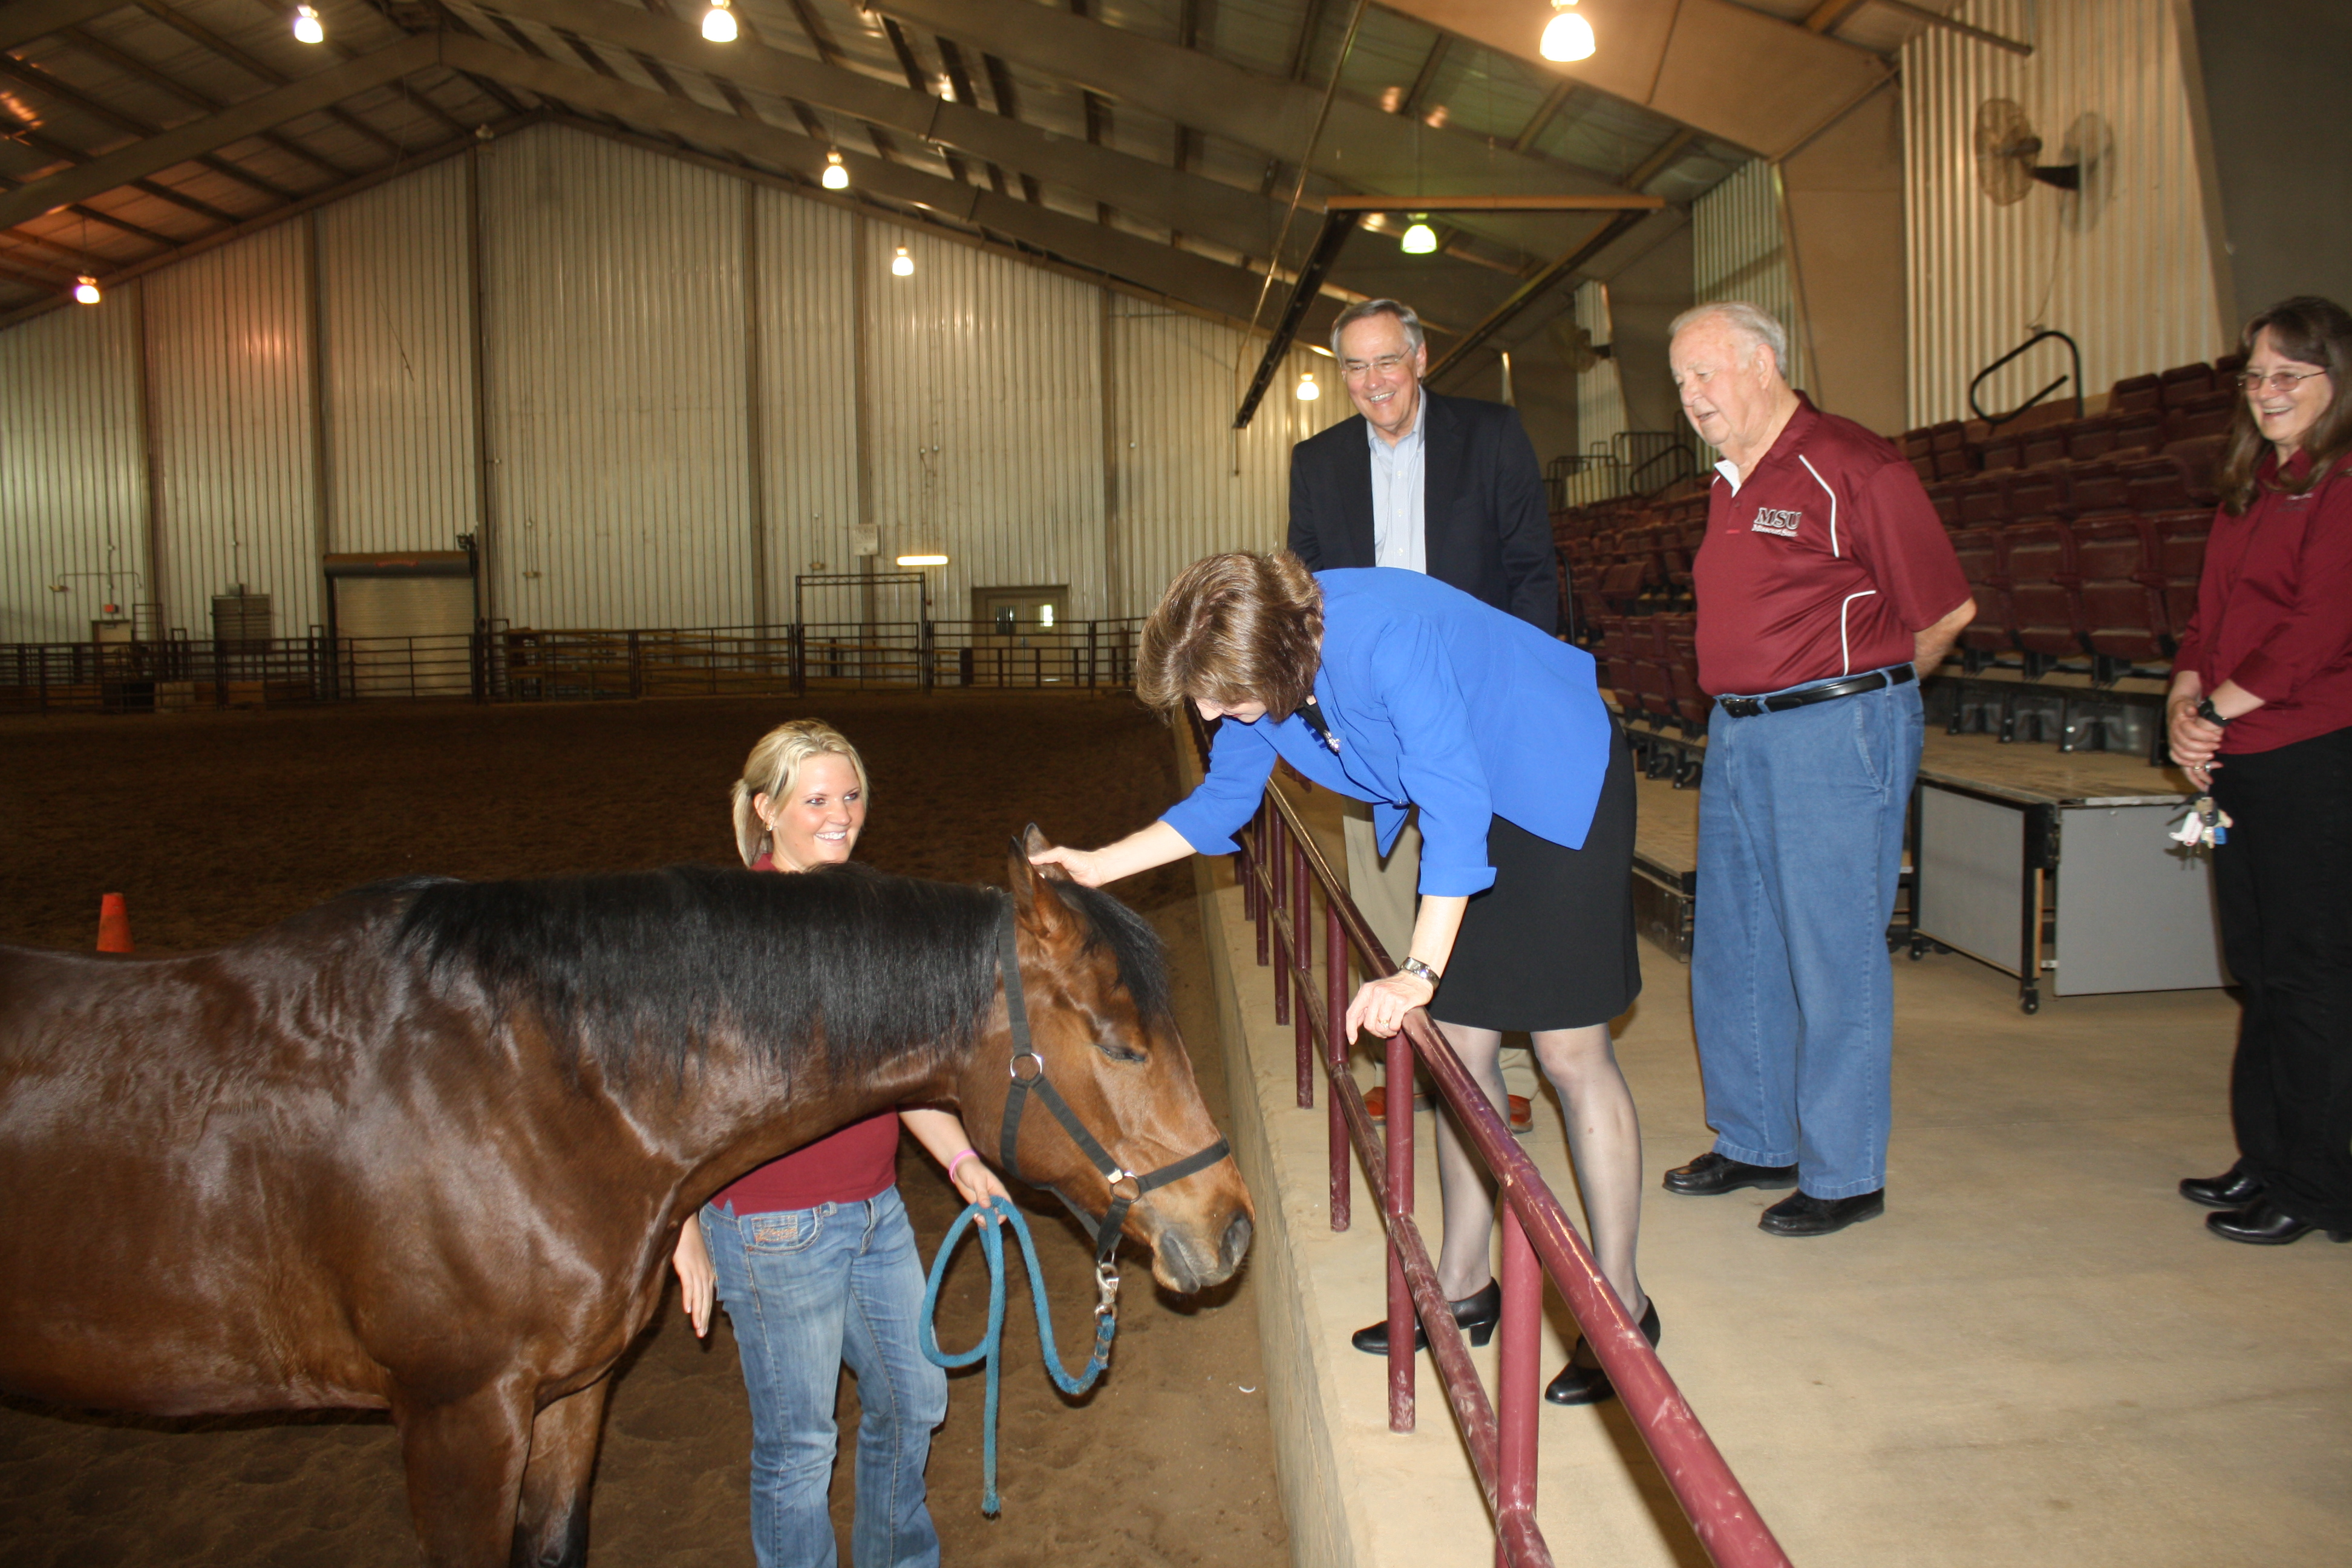 Congresswoman Vickie Hartzler's Visit to the Darr Agricultural Center